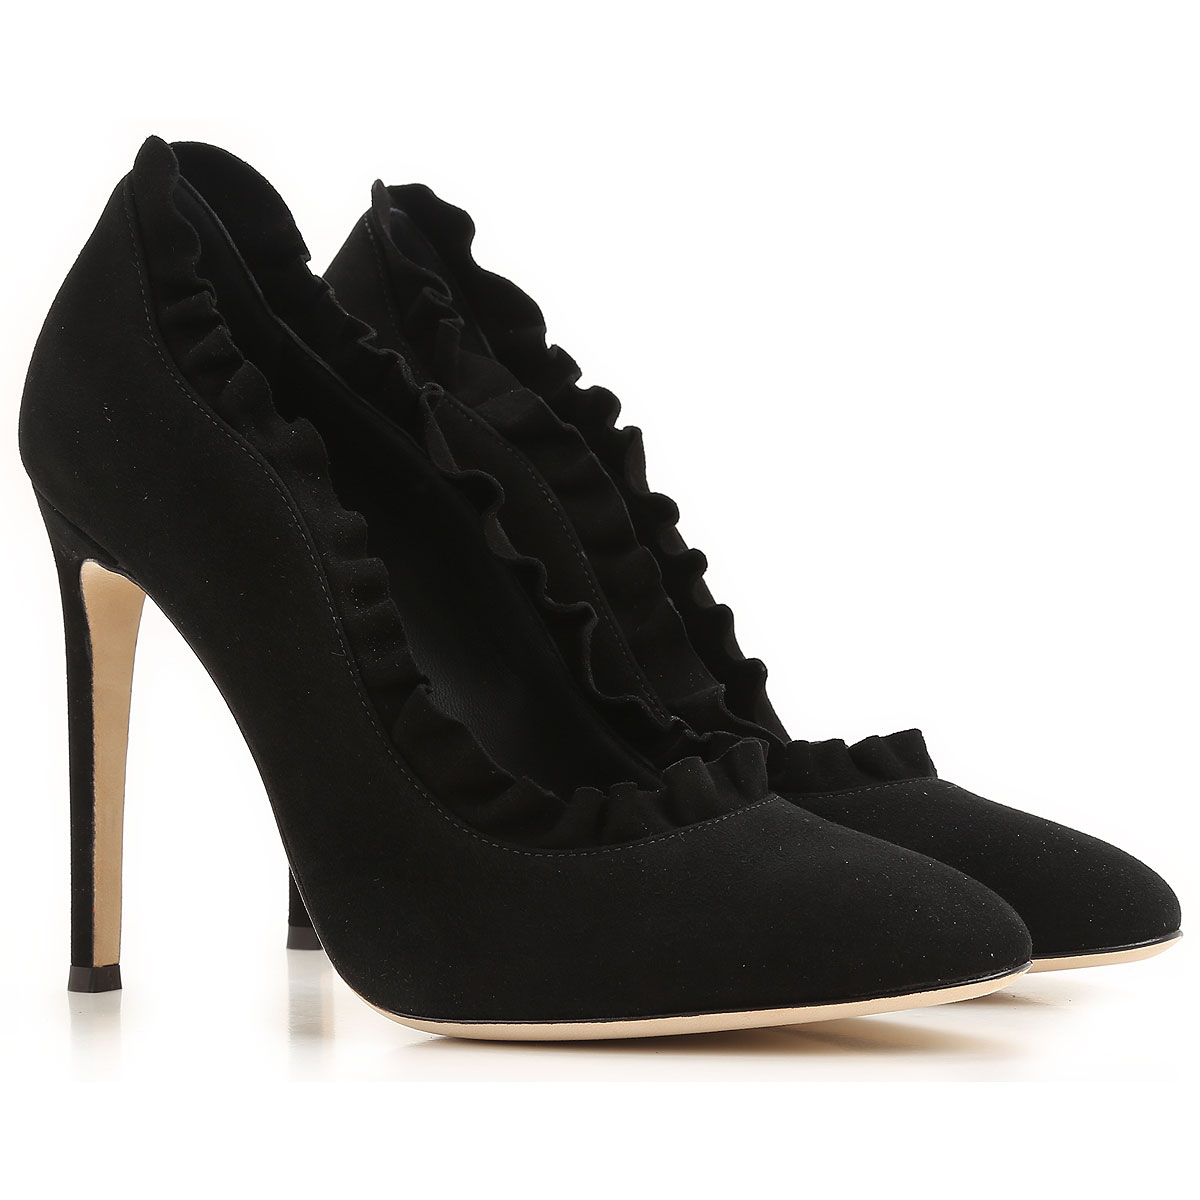 Giuseppe Zanotti Design Pumps & High Heels for Women On Sale in Outlet, Bimba , Black, suede, 2019, 6